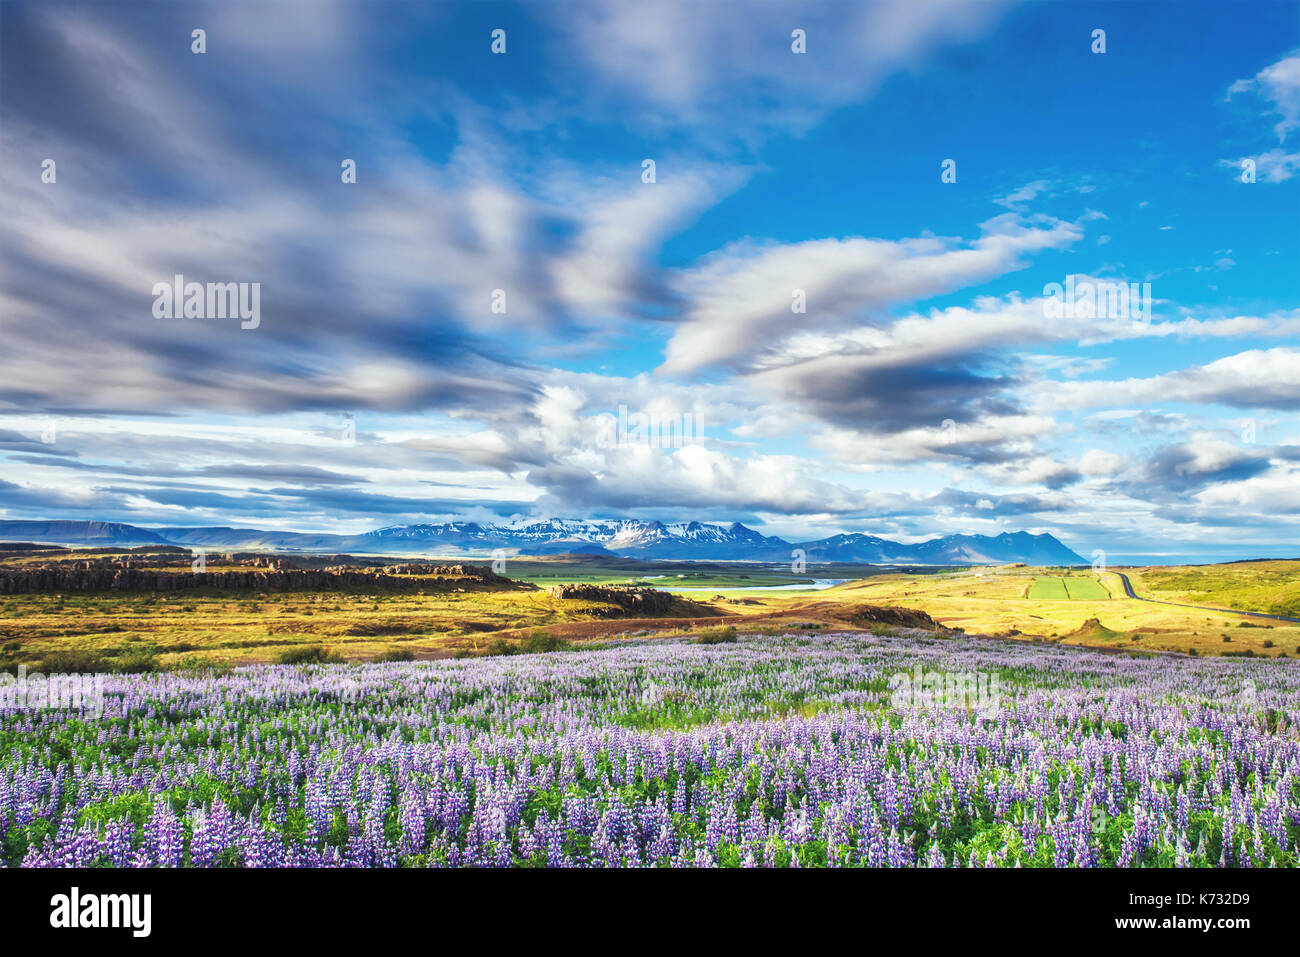 Picturesque views of the river and mountains in Iceland. Stock Photo